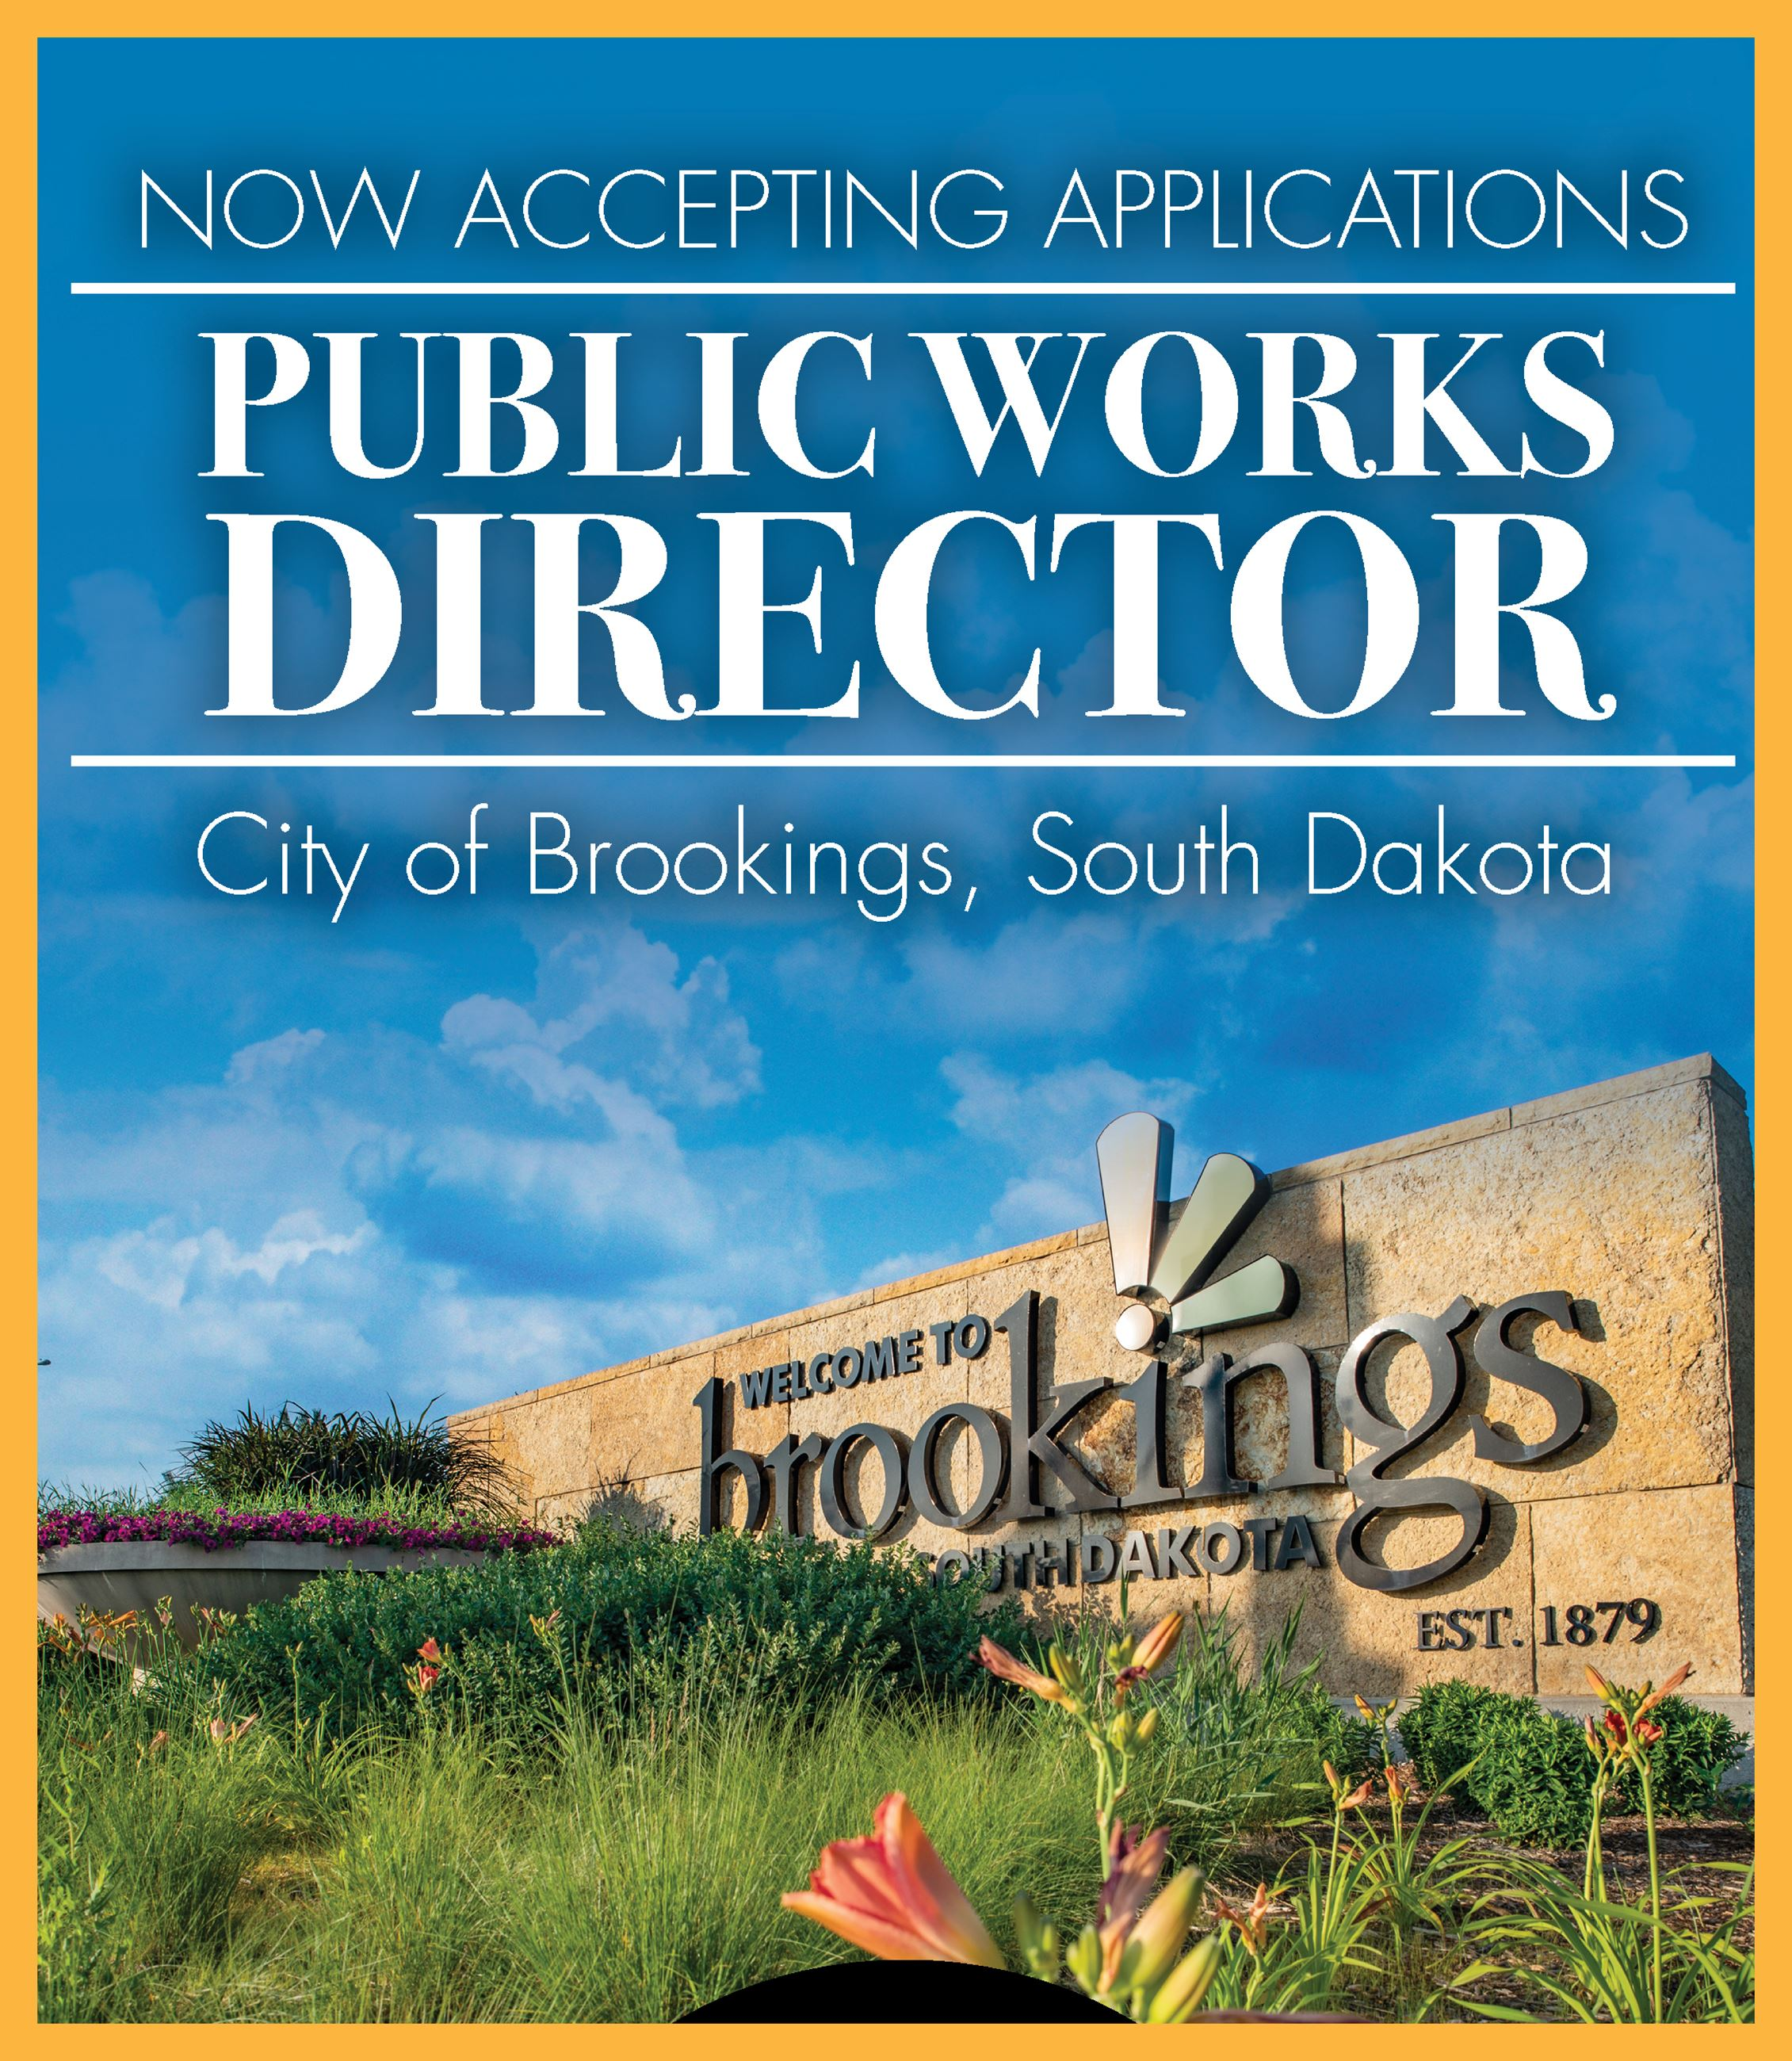 News Flash Graphic - Public Works Director